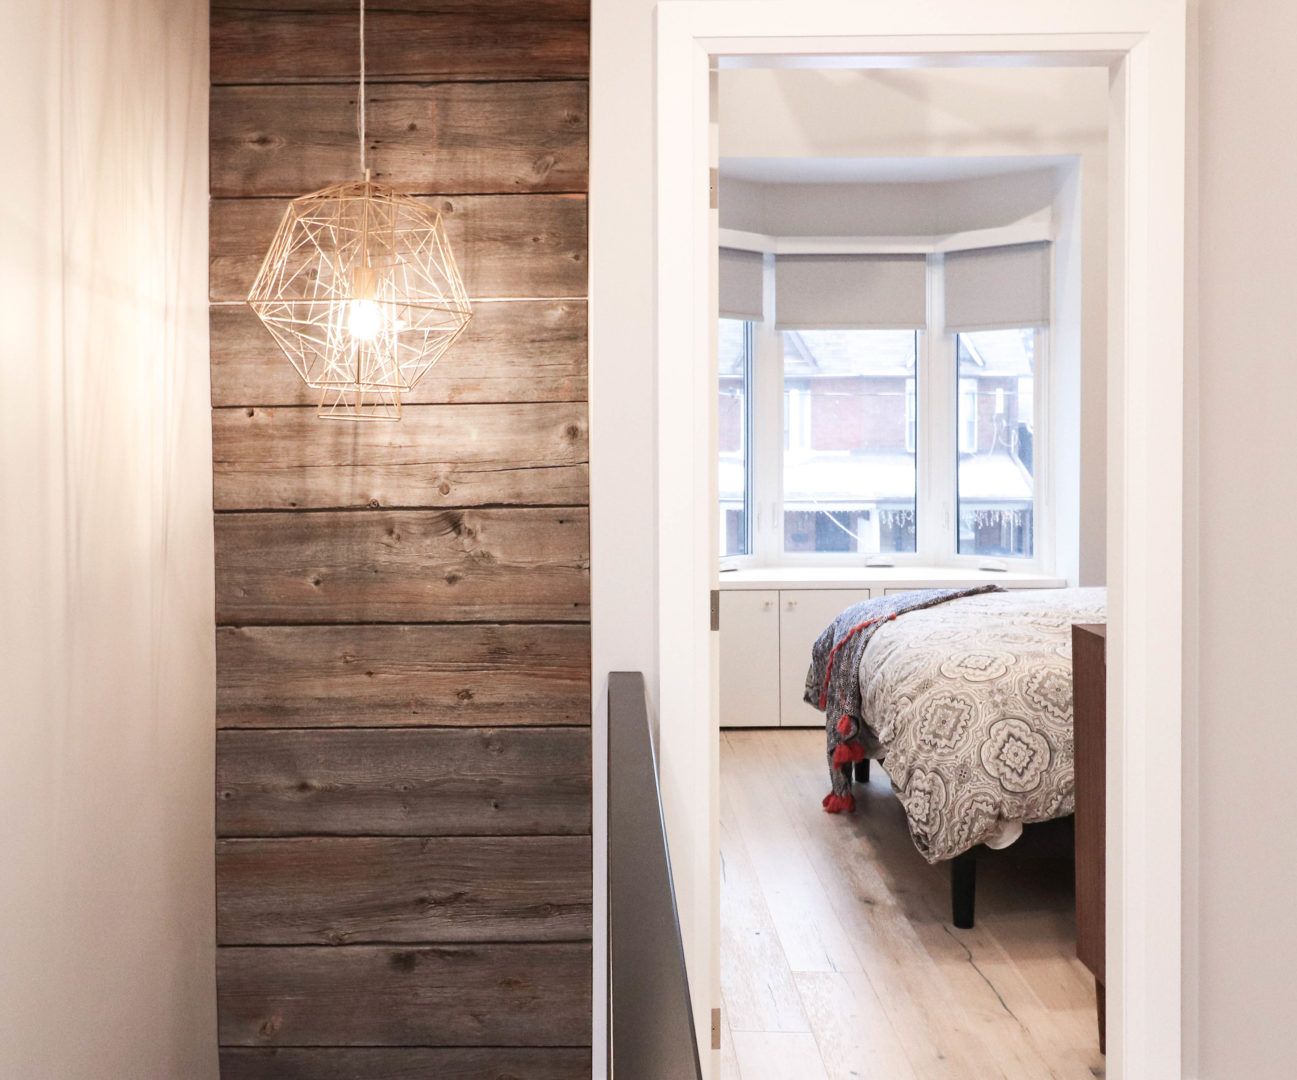 Designing for a Small Space - Lara Young for Nesting Story